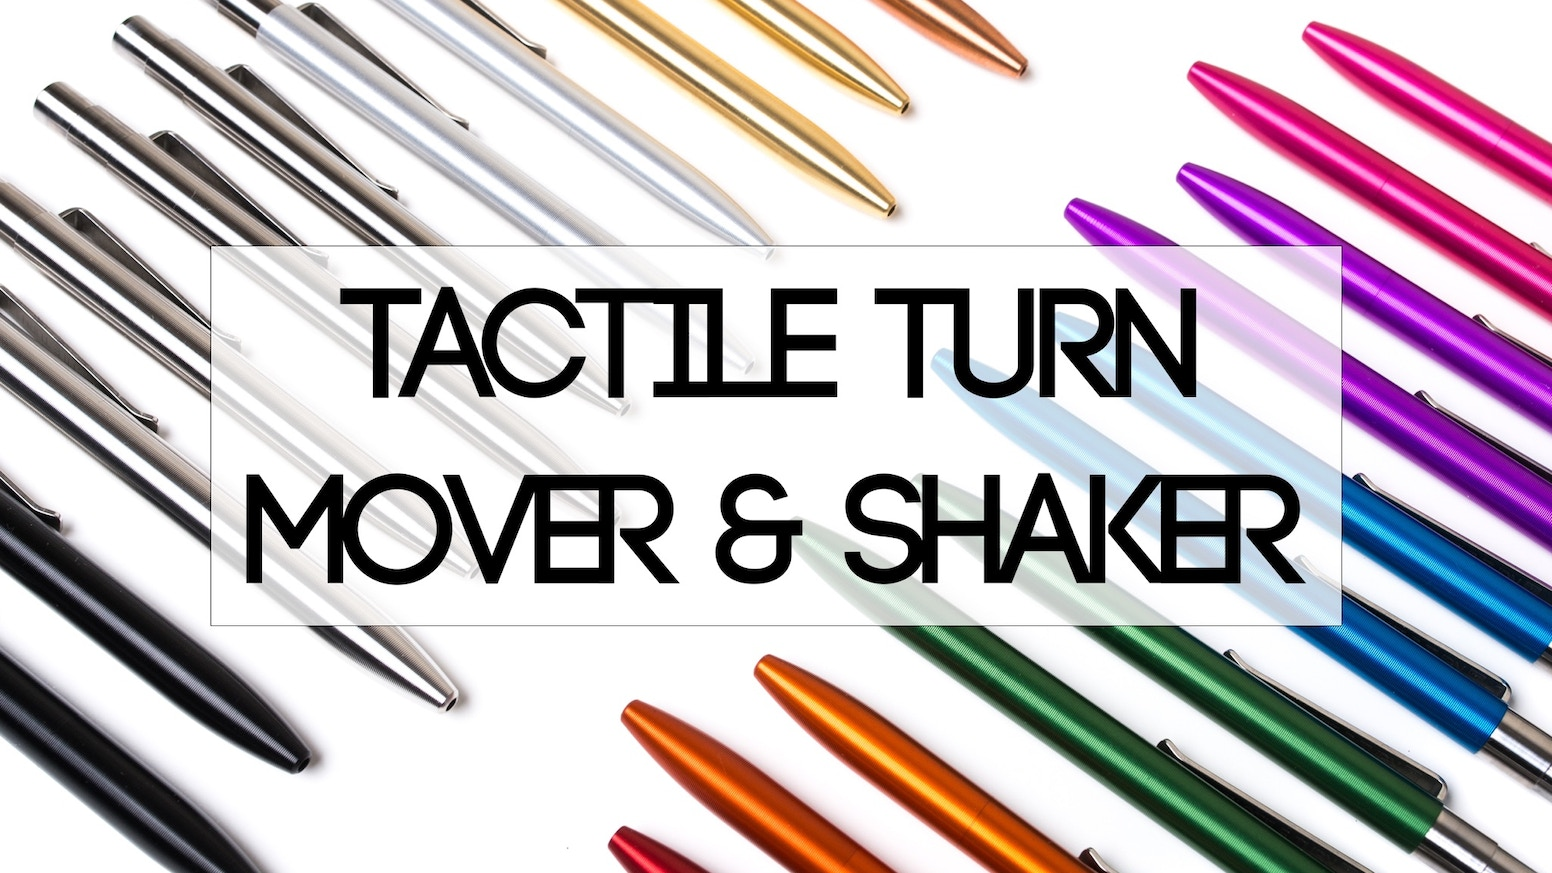 New and improved Tactile Turn Mover & Shaker click pens with an in house made titanium mechanism!